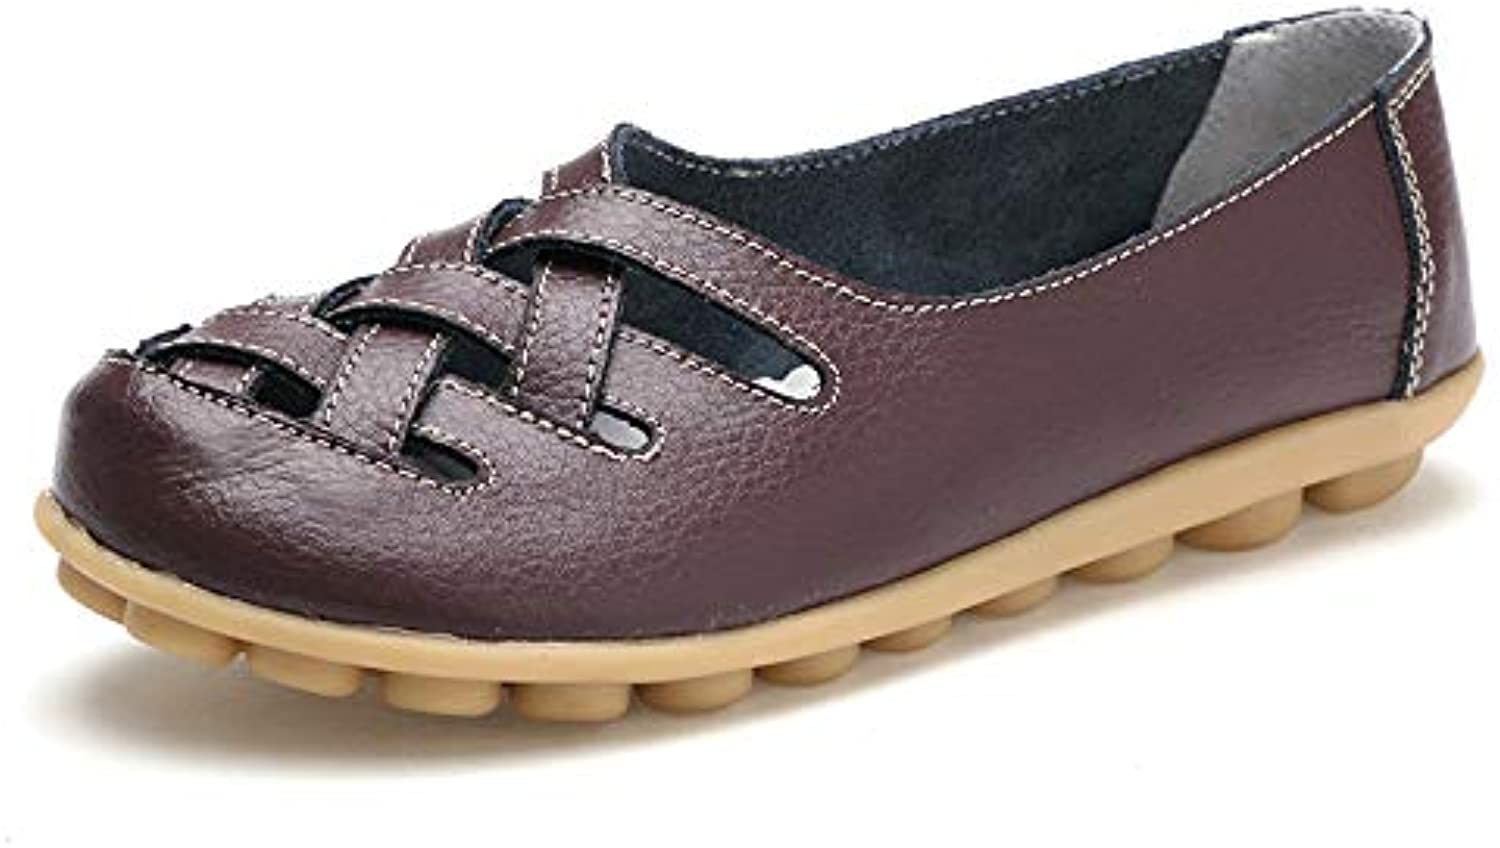 DUOYANGJIASHA Women's Leather Loafer Casual Flat shoes Rubber Sole shoes (9 B(M) US, Coffee)